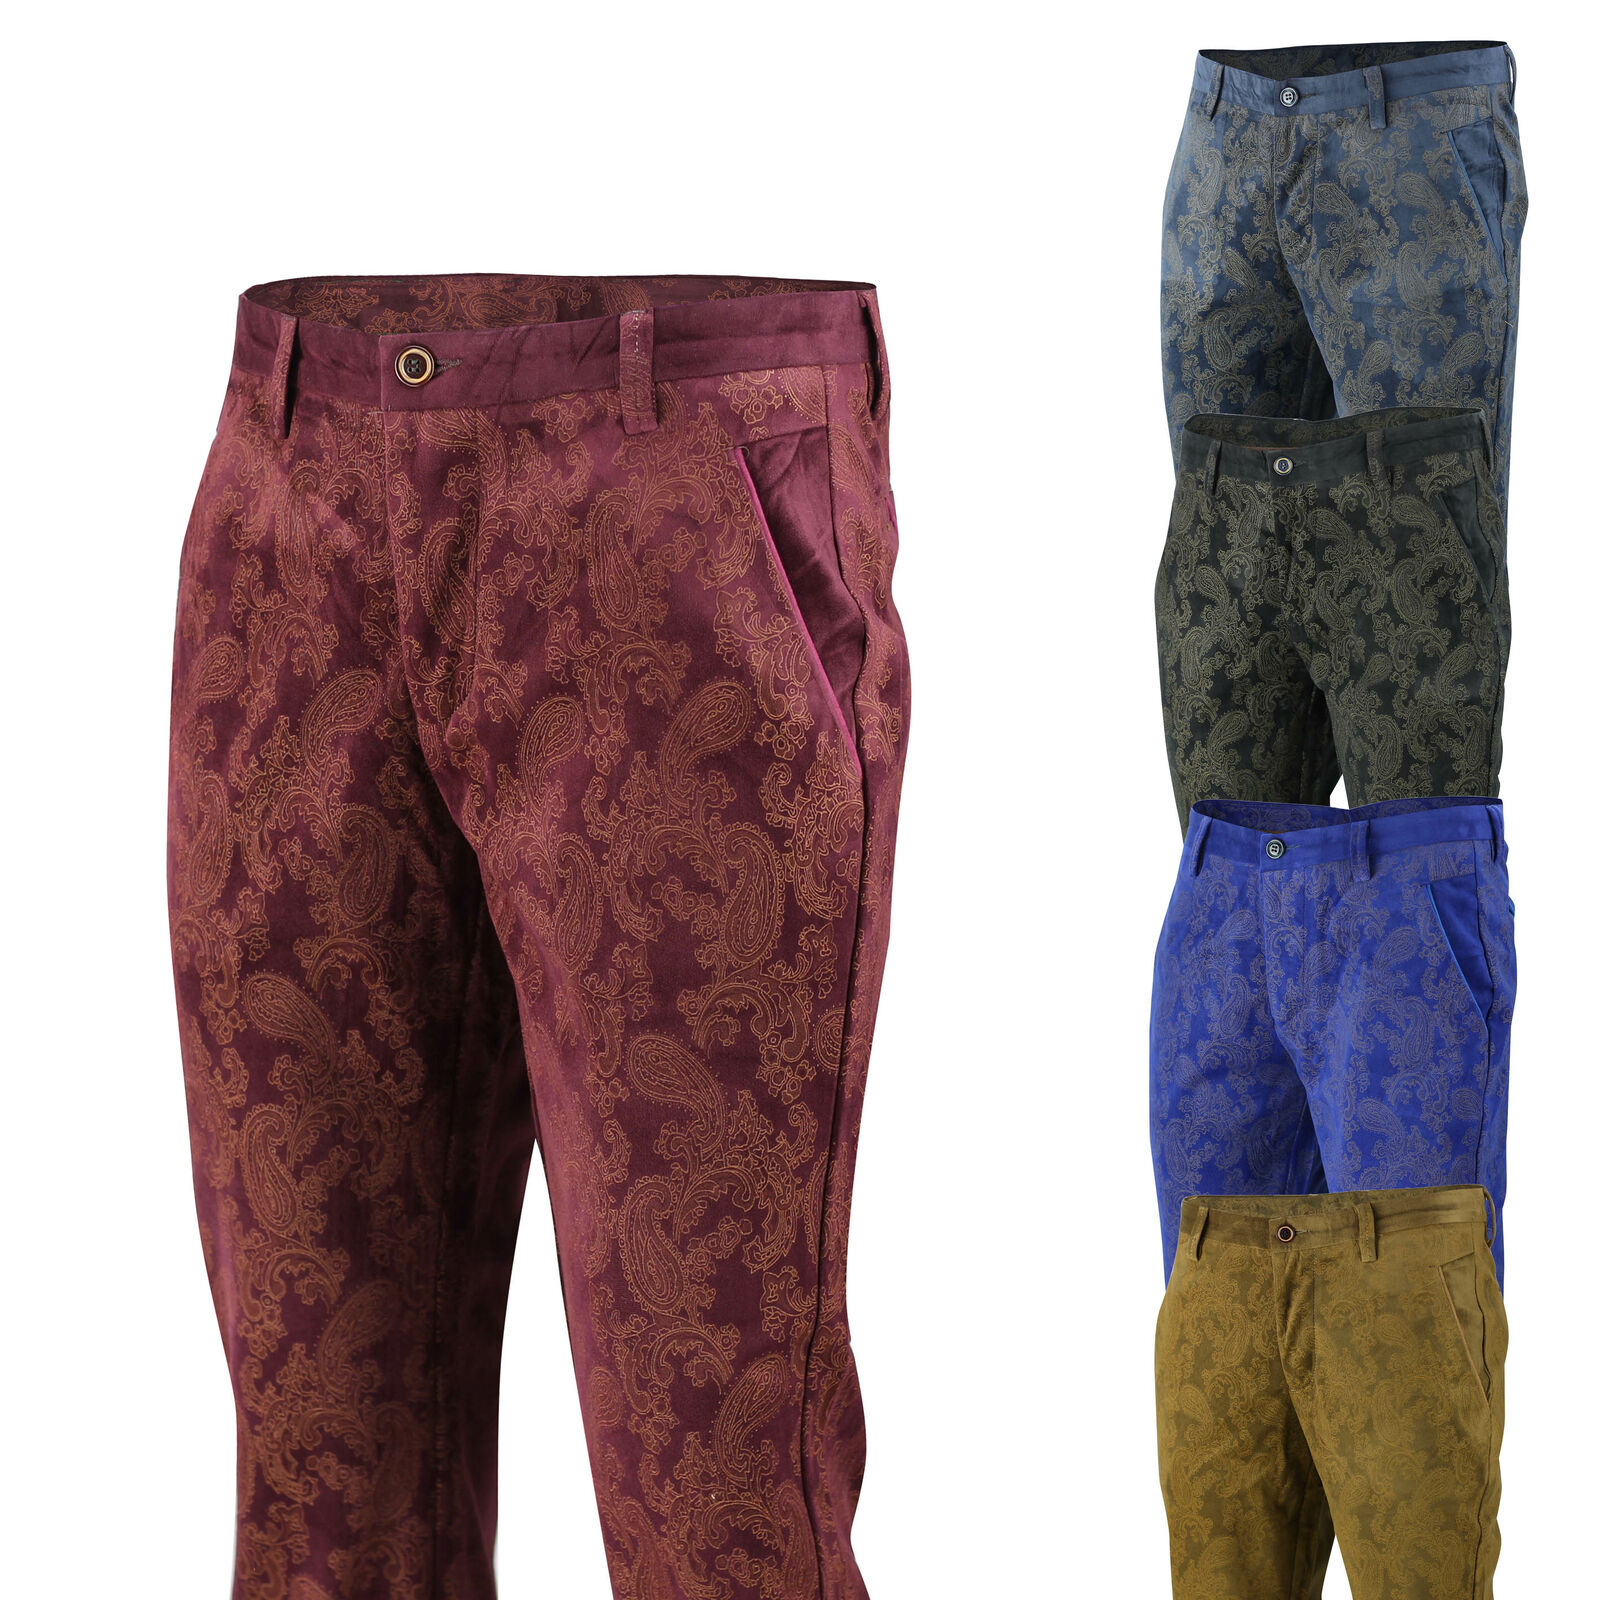 lovely luster high quality materials find workmanship Details about Mens Vintage Slim Fit Side Pocket Paisley Printed Soft Velvet  Trousers Chinos